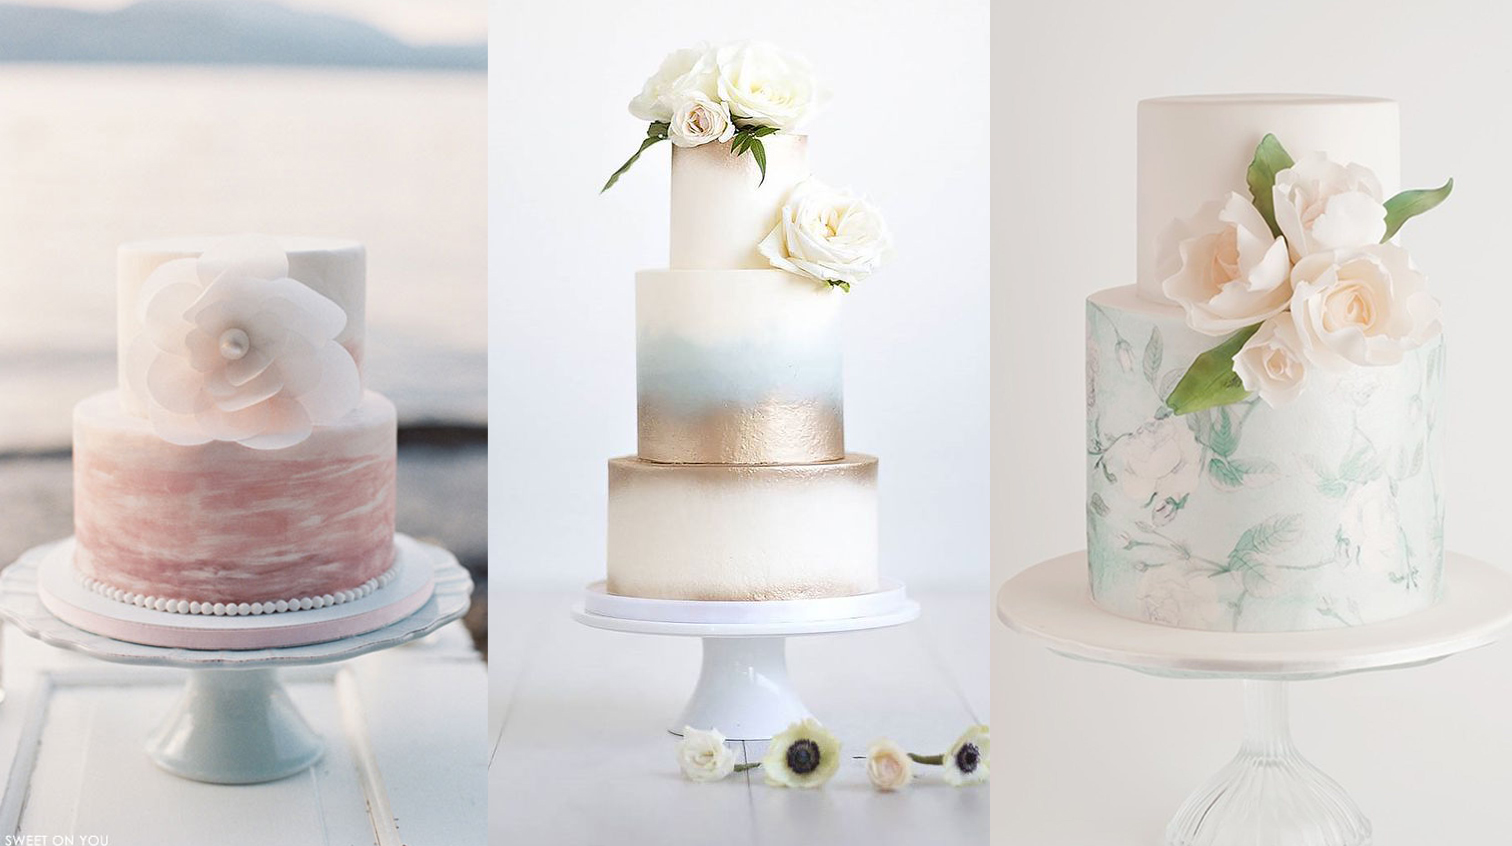 Wedding Cake Design Ideas - Southern Living